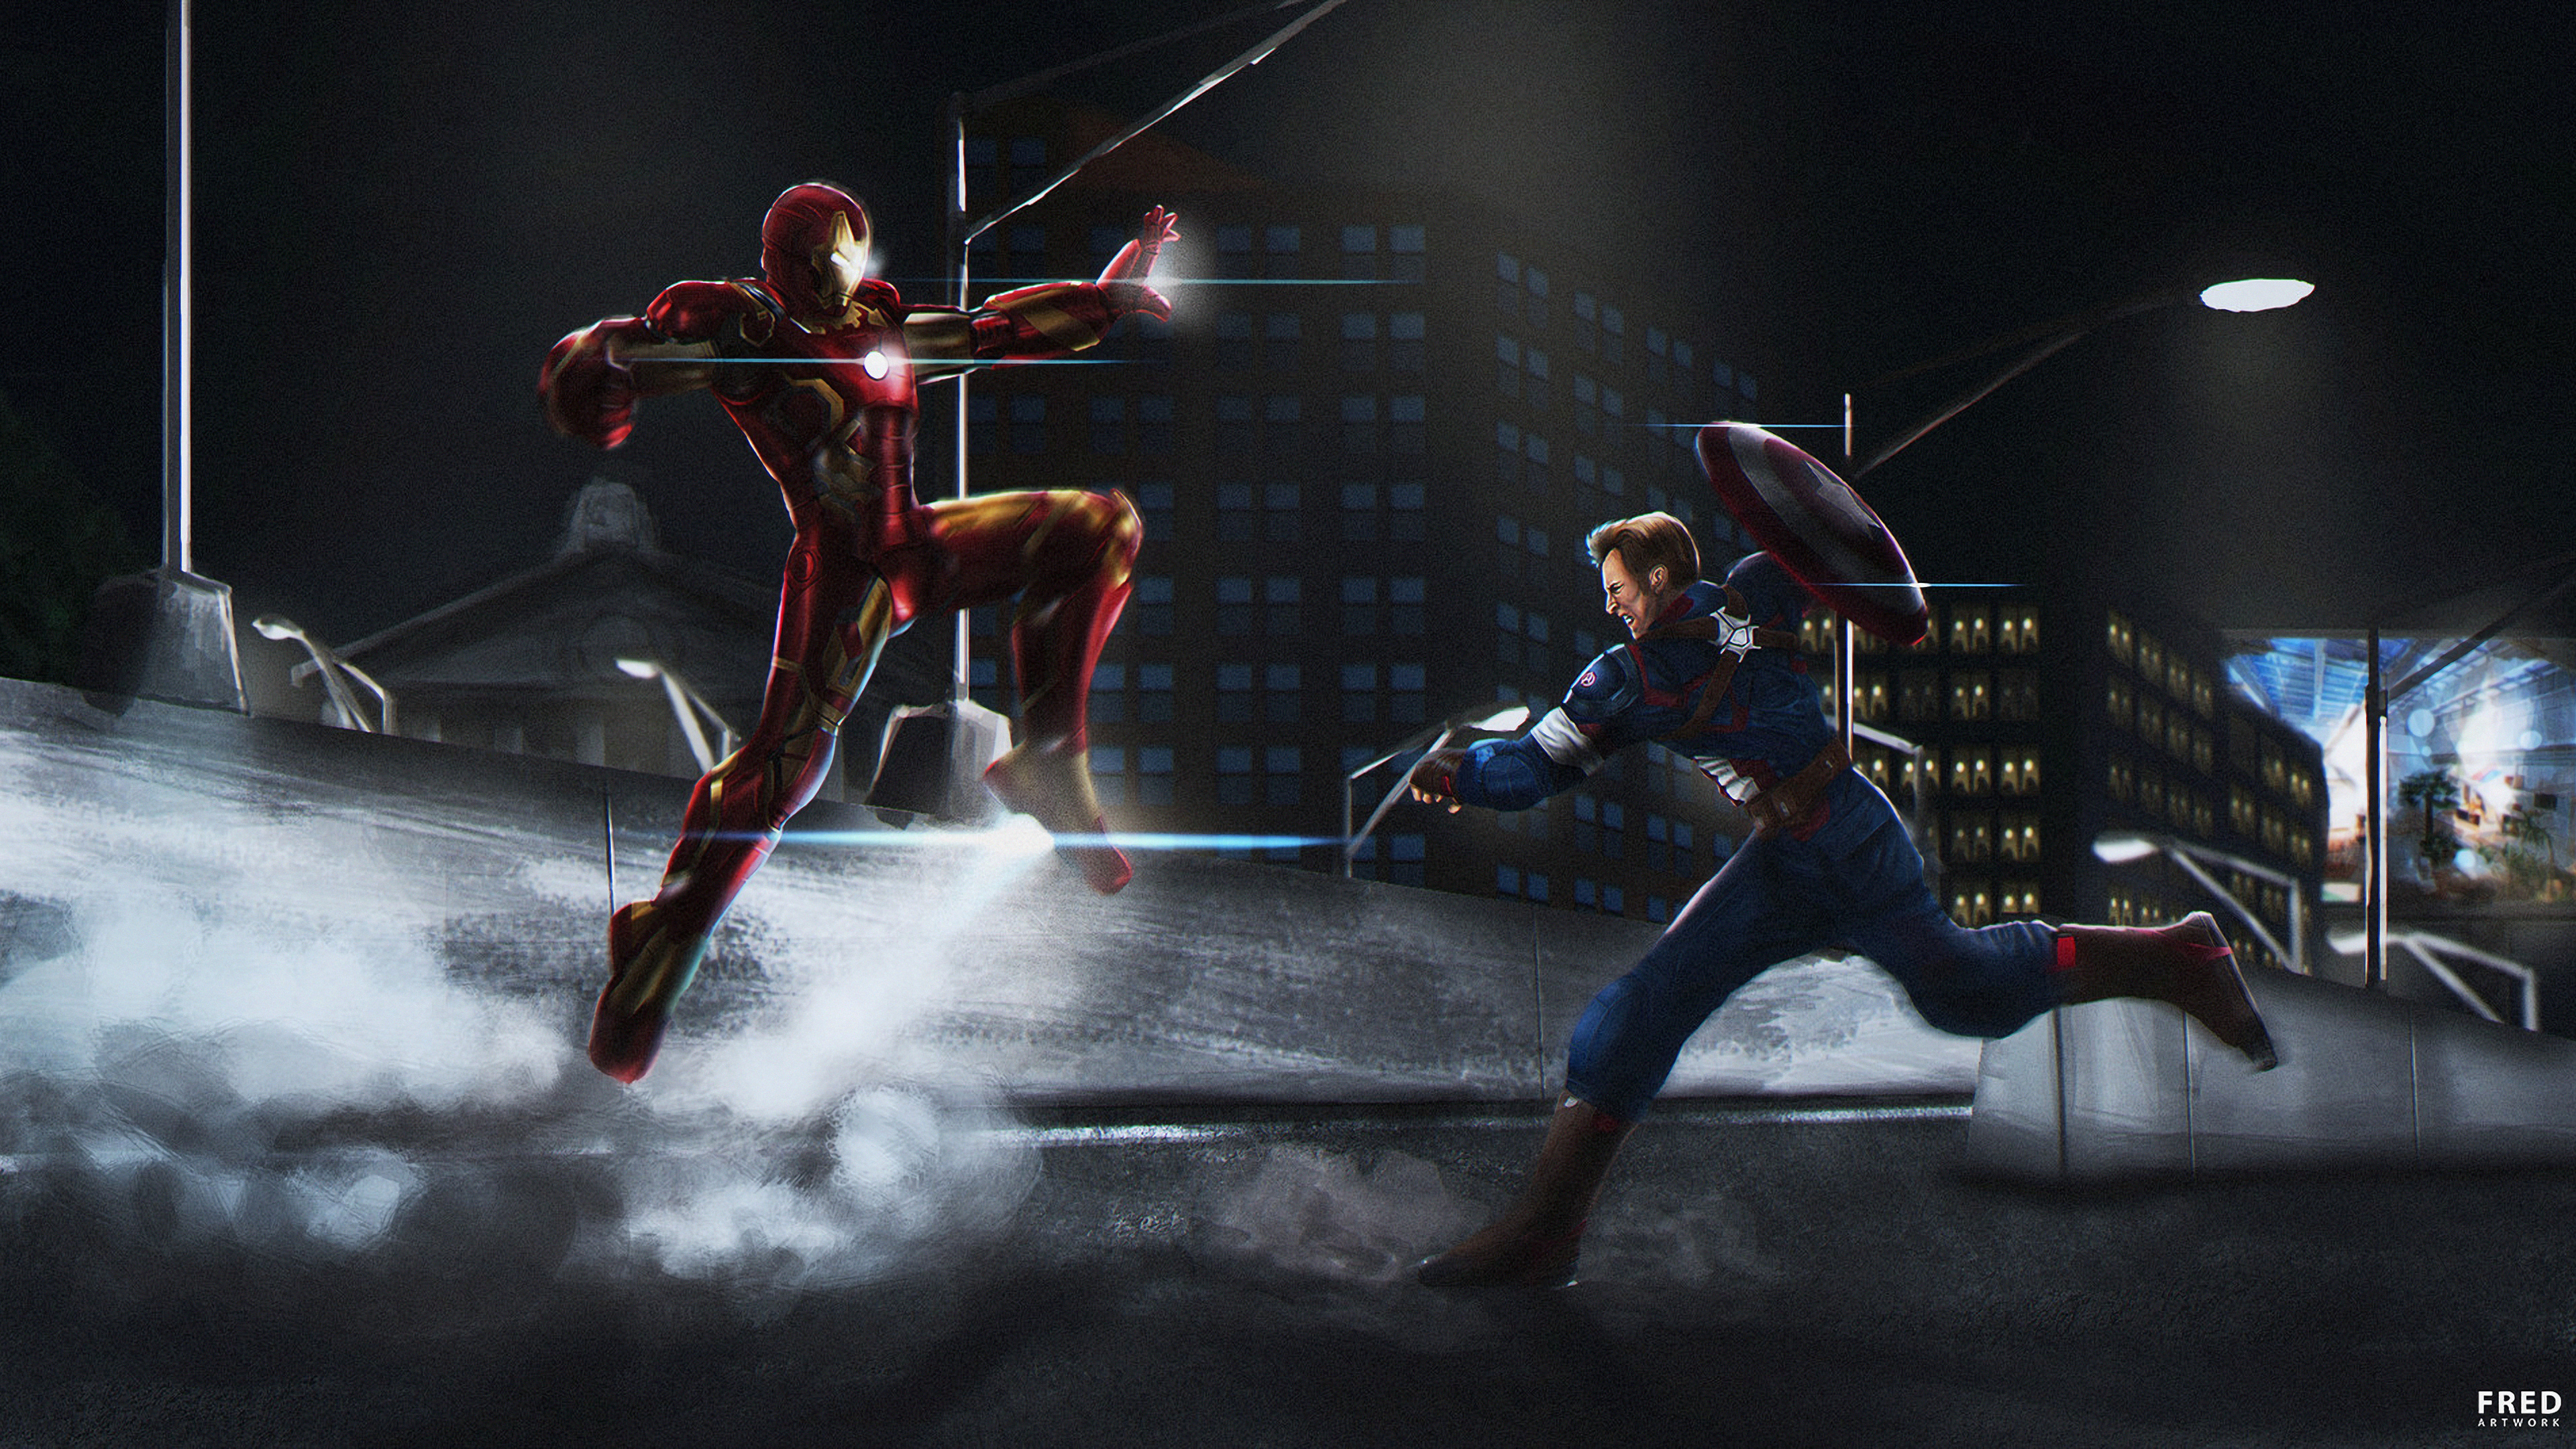 captain and iron man 1569186887 - Captain And Iron Man - superheroes wallpapers, iron man wallpapers, hd-wallpapers, captain america wallpapers, artwork wallpapers, 4k-wallpapers